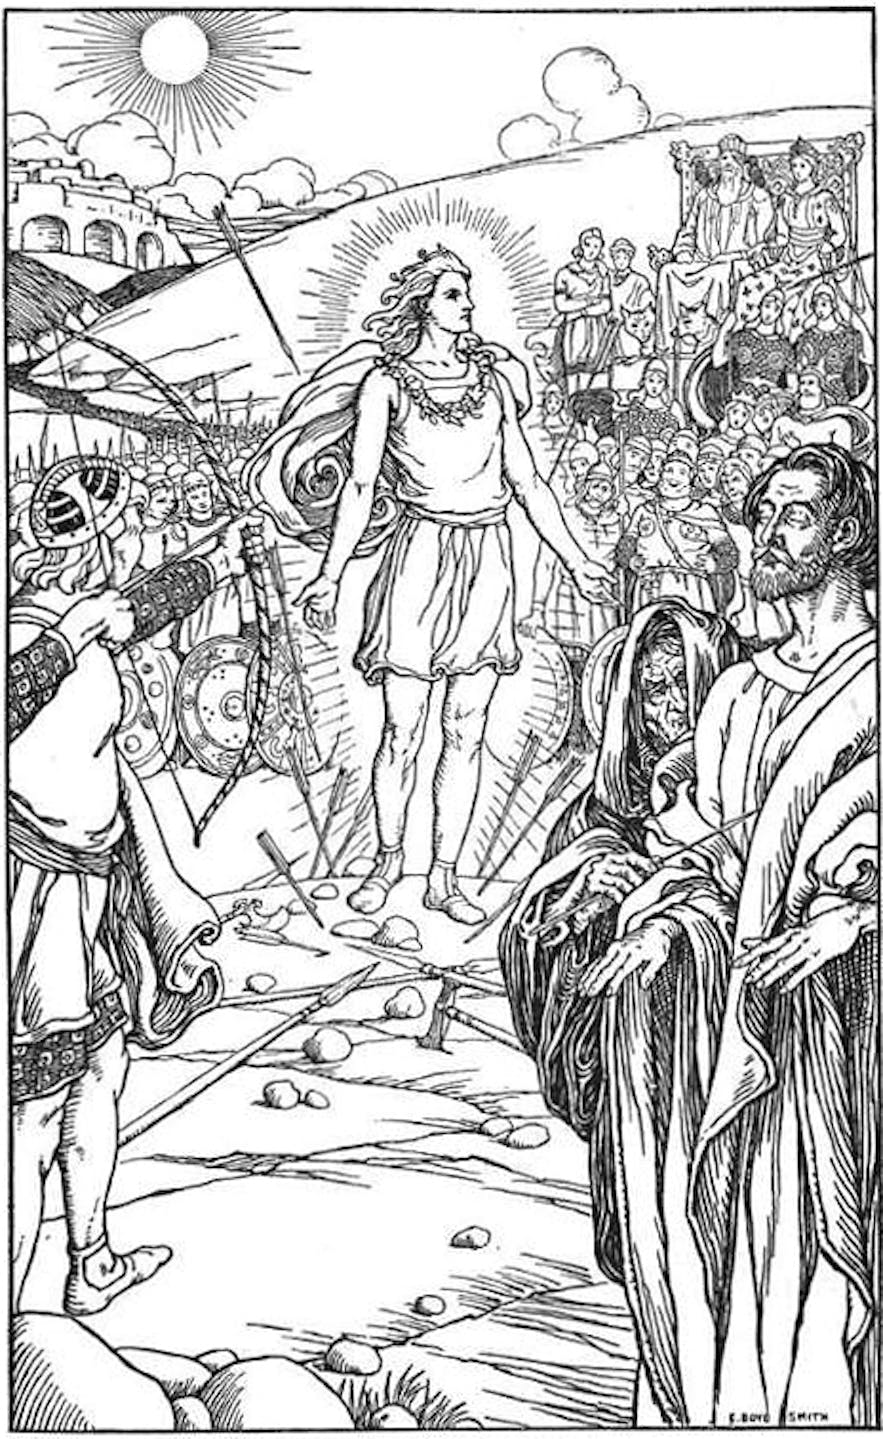 Baldr, one of the sons of Odin.